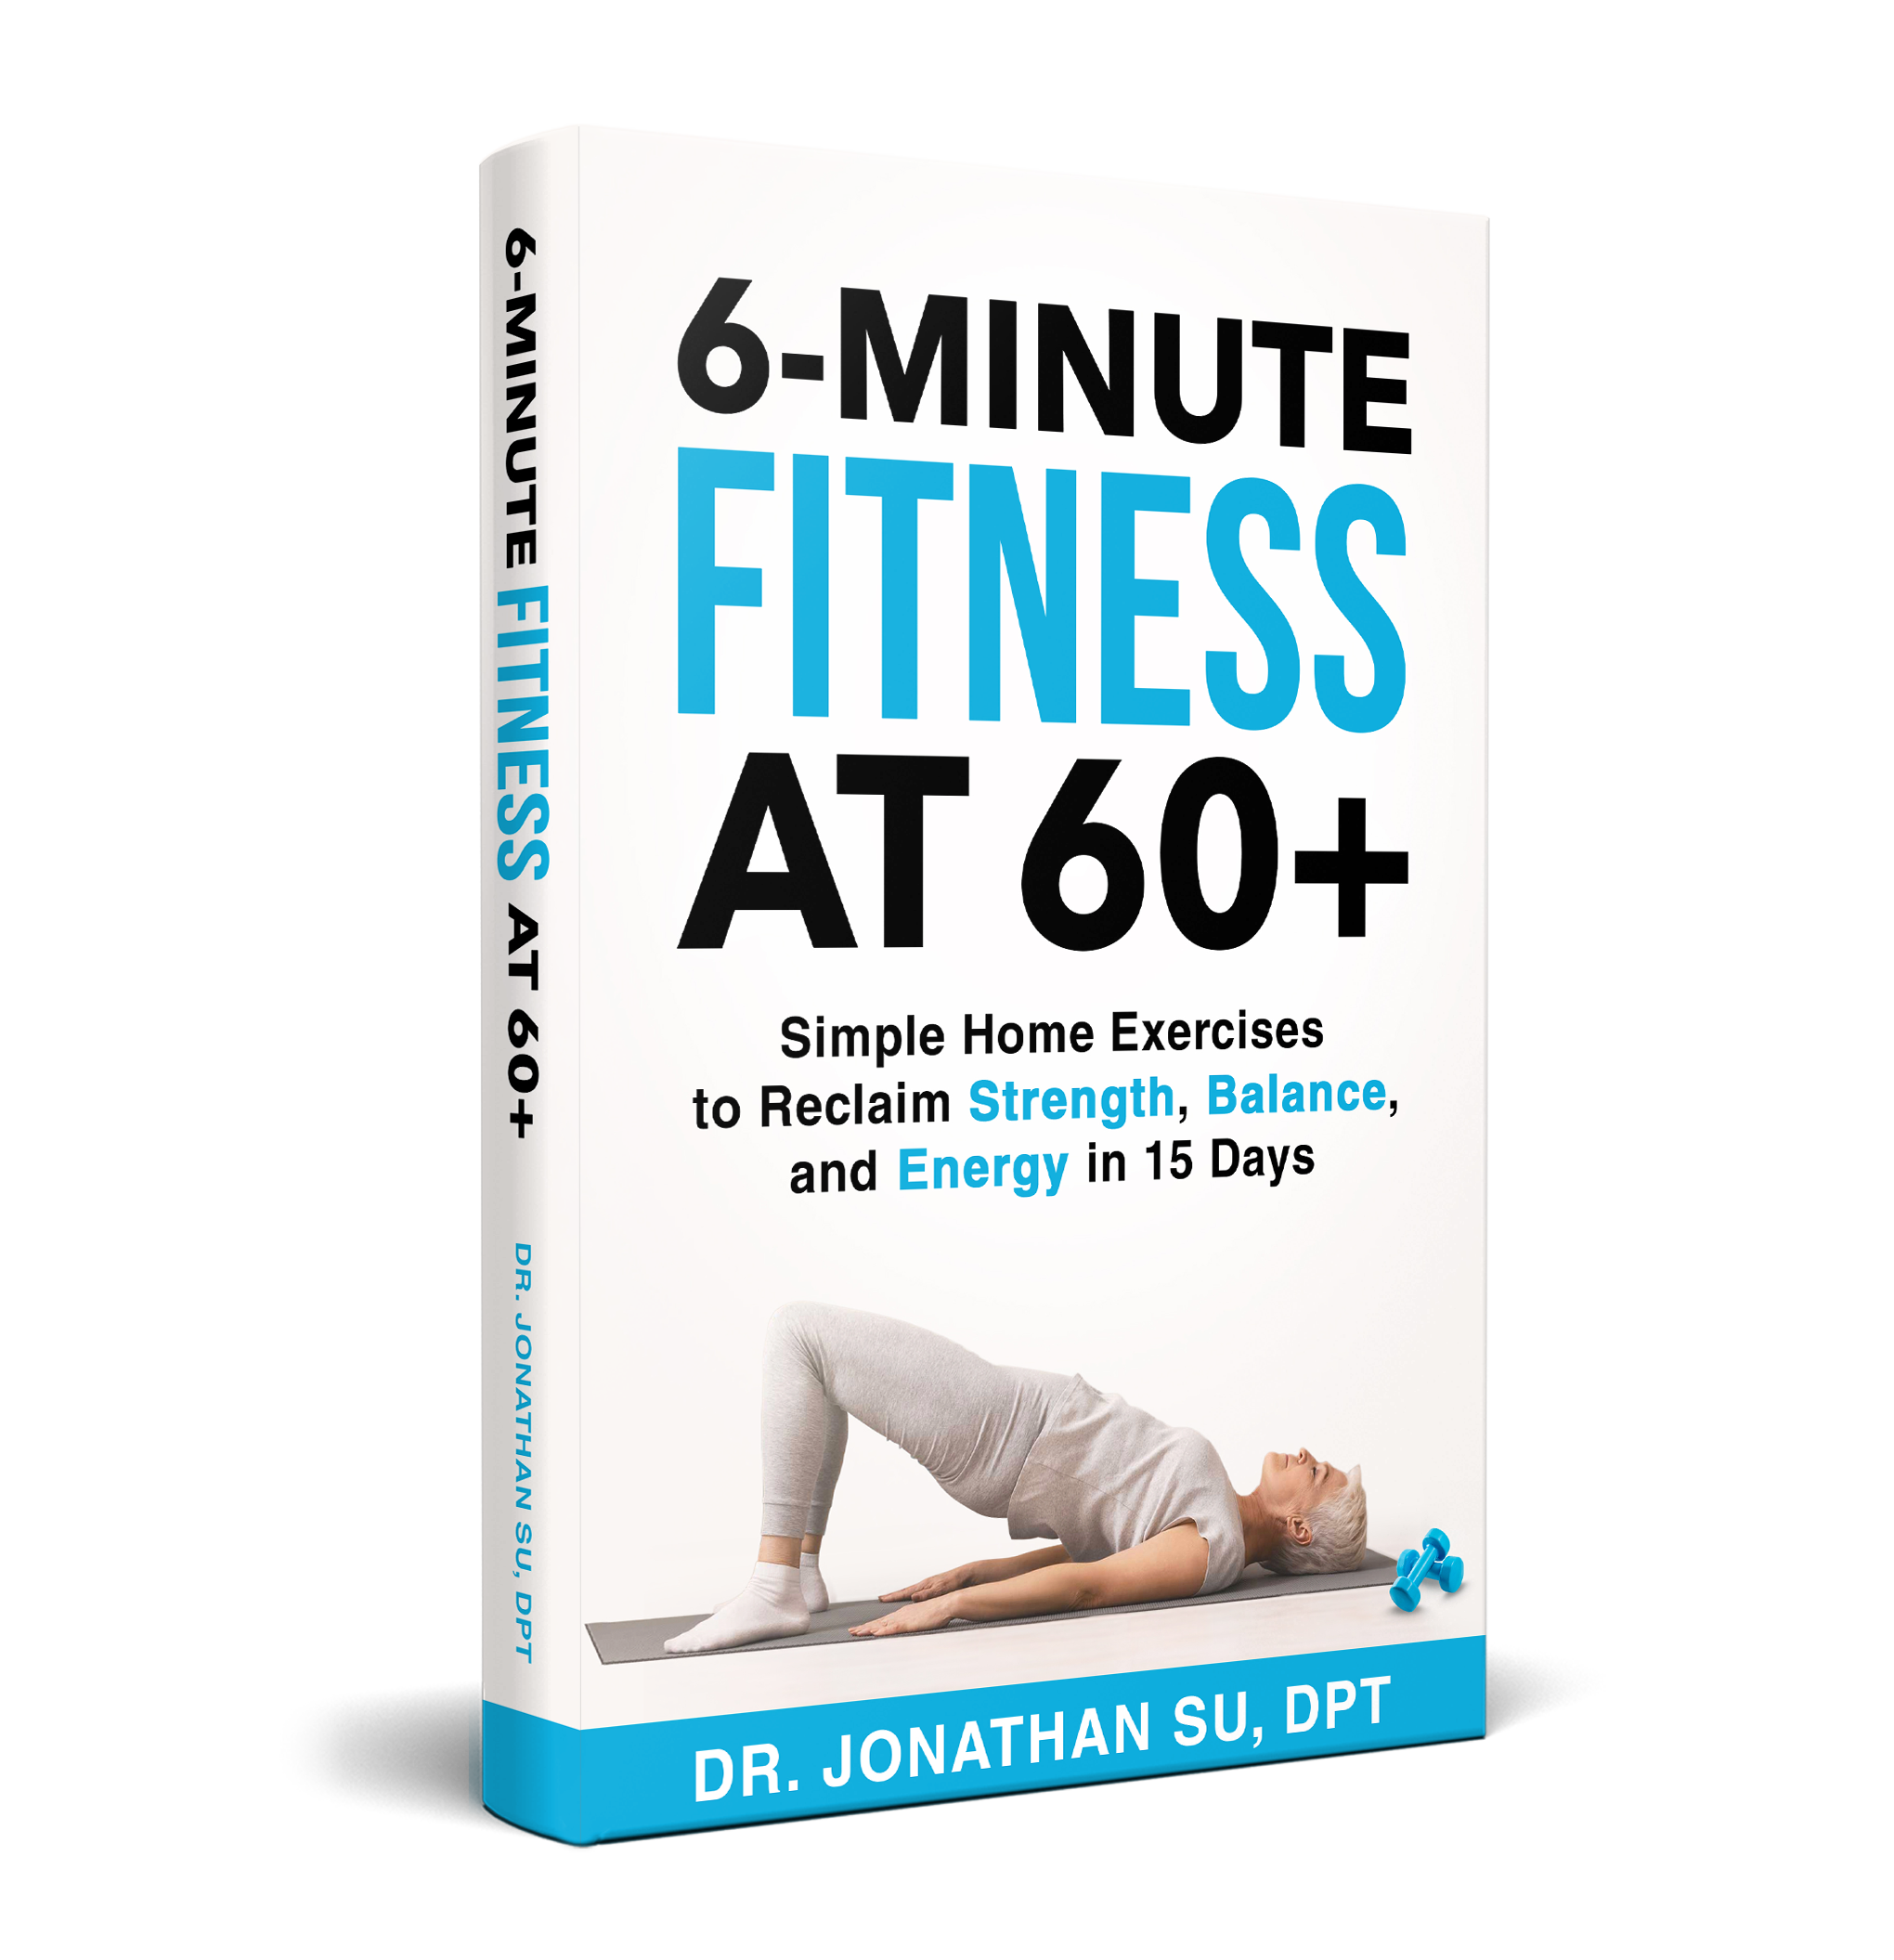 6-Minute Fitness at 60+